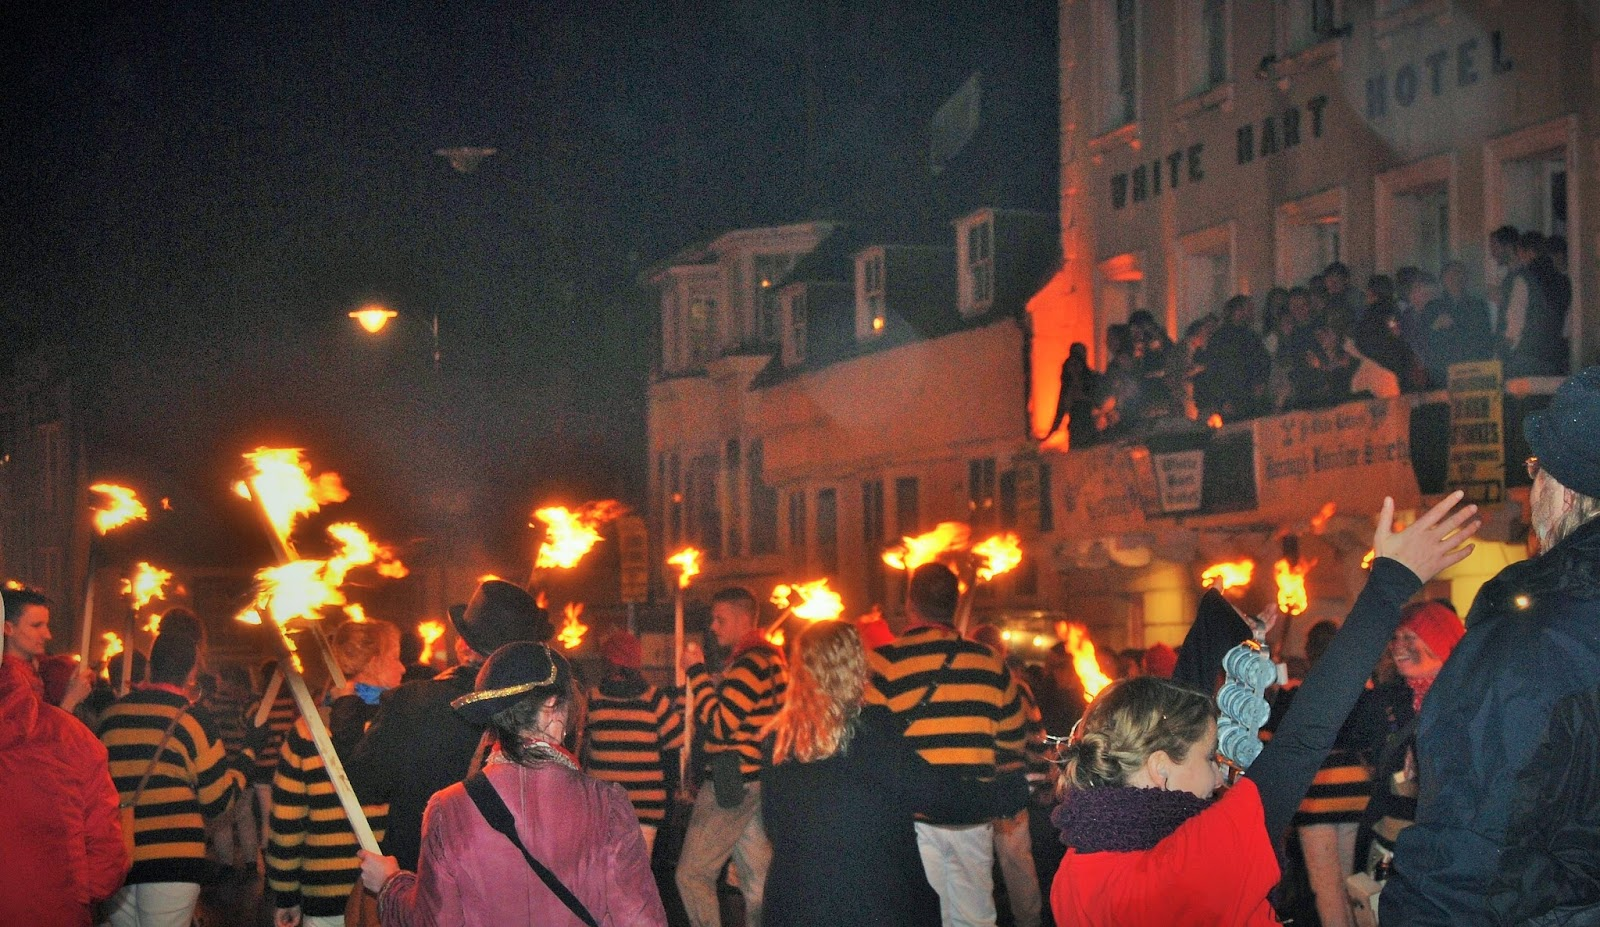 Lewes Bonfire, photo by Modern Bric a Brac